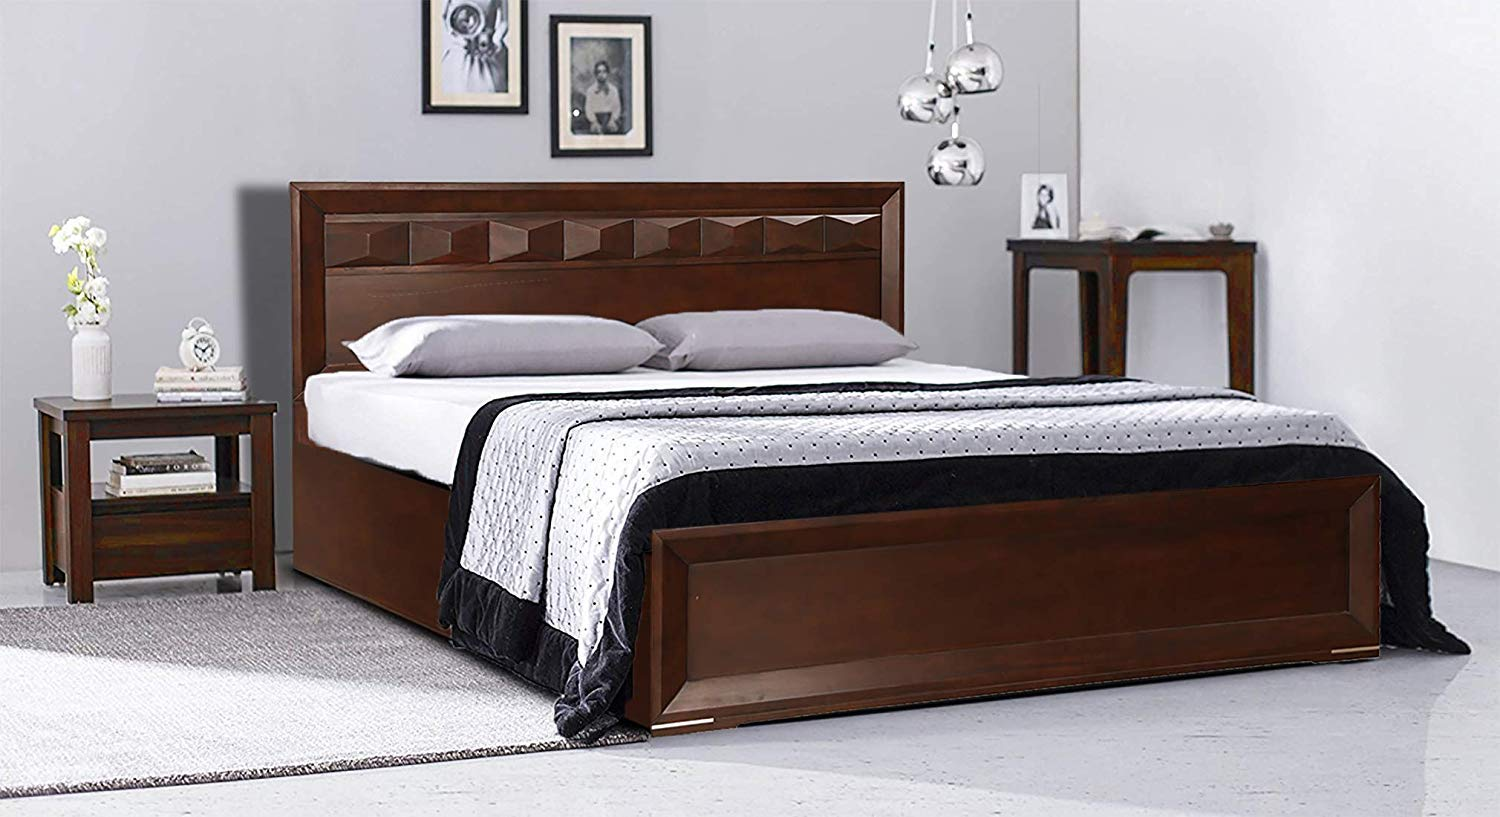 Bolmiz King Size Bed for Bedroom Wood Furniture, king size bed of wood